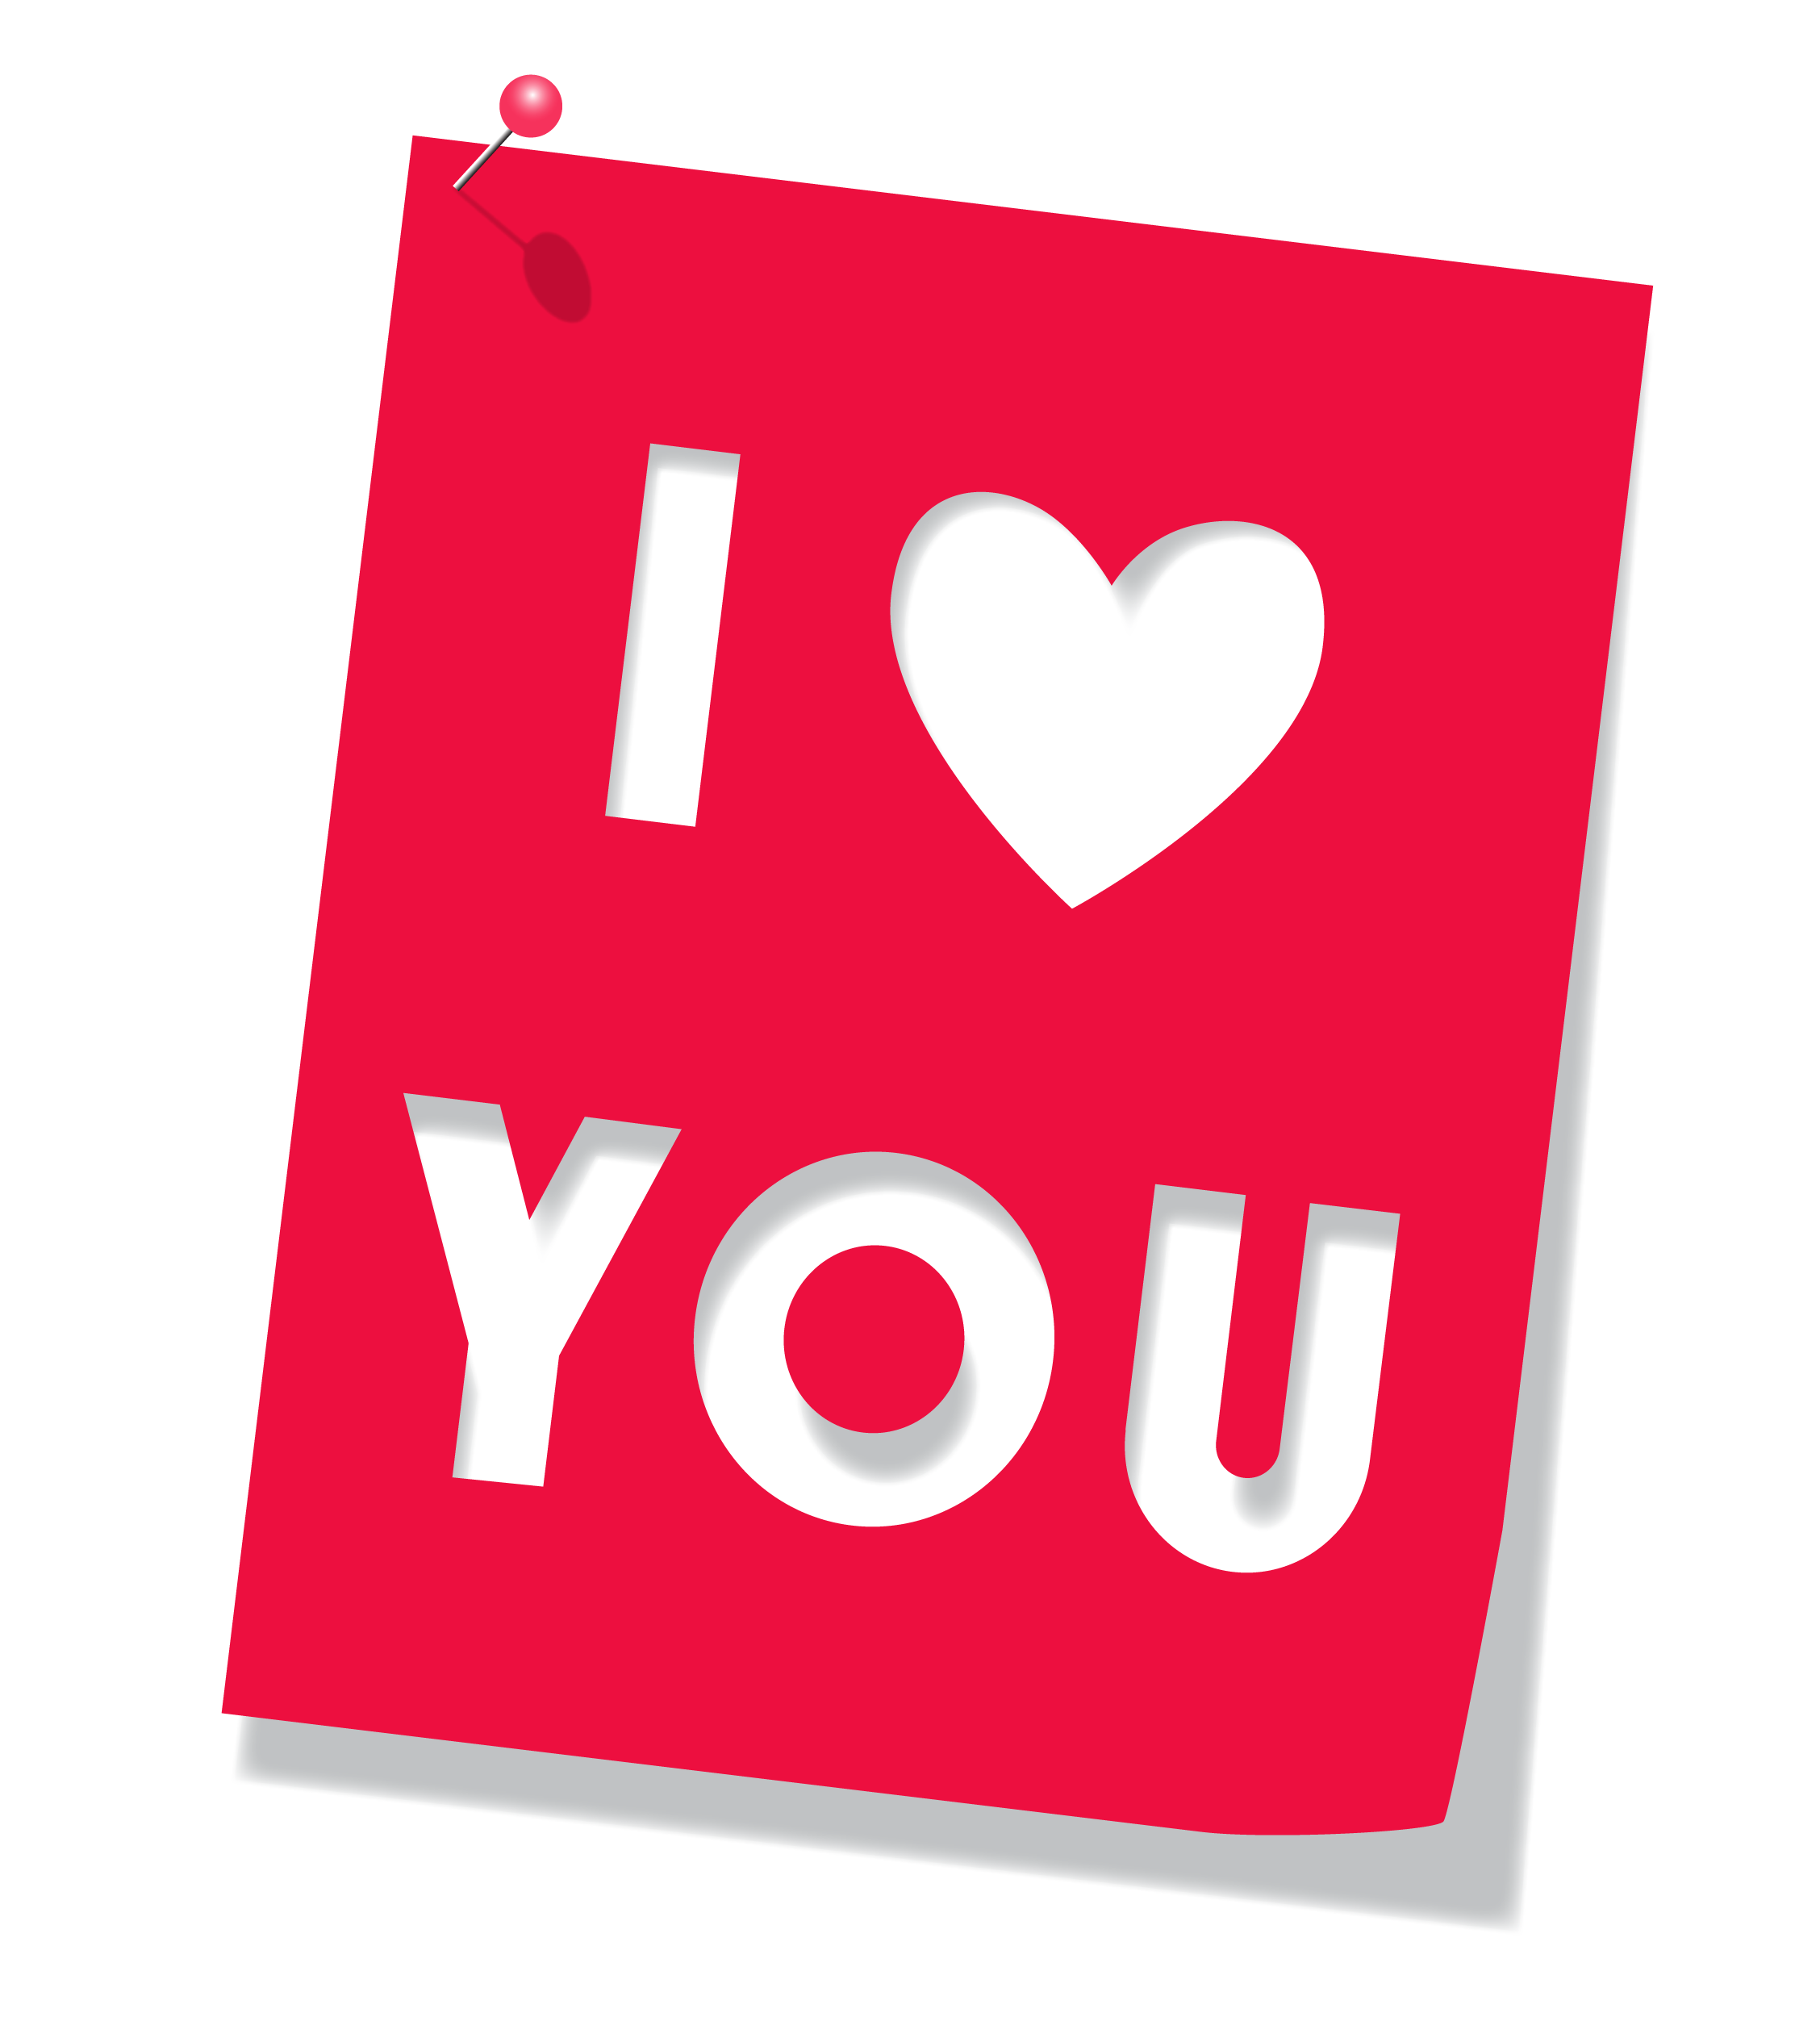 Love clipart png. I you text all